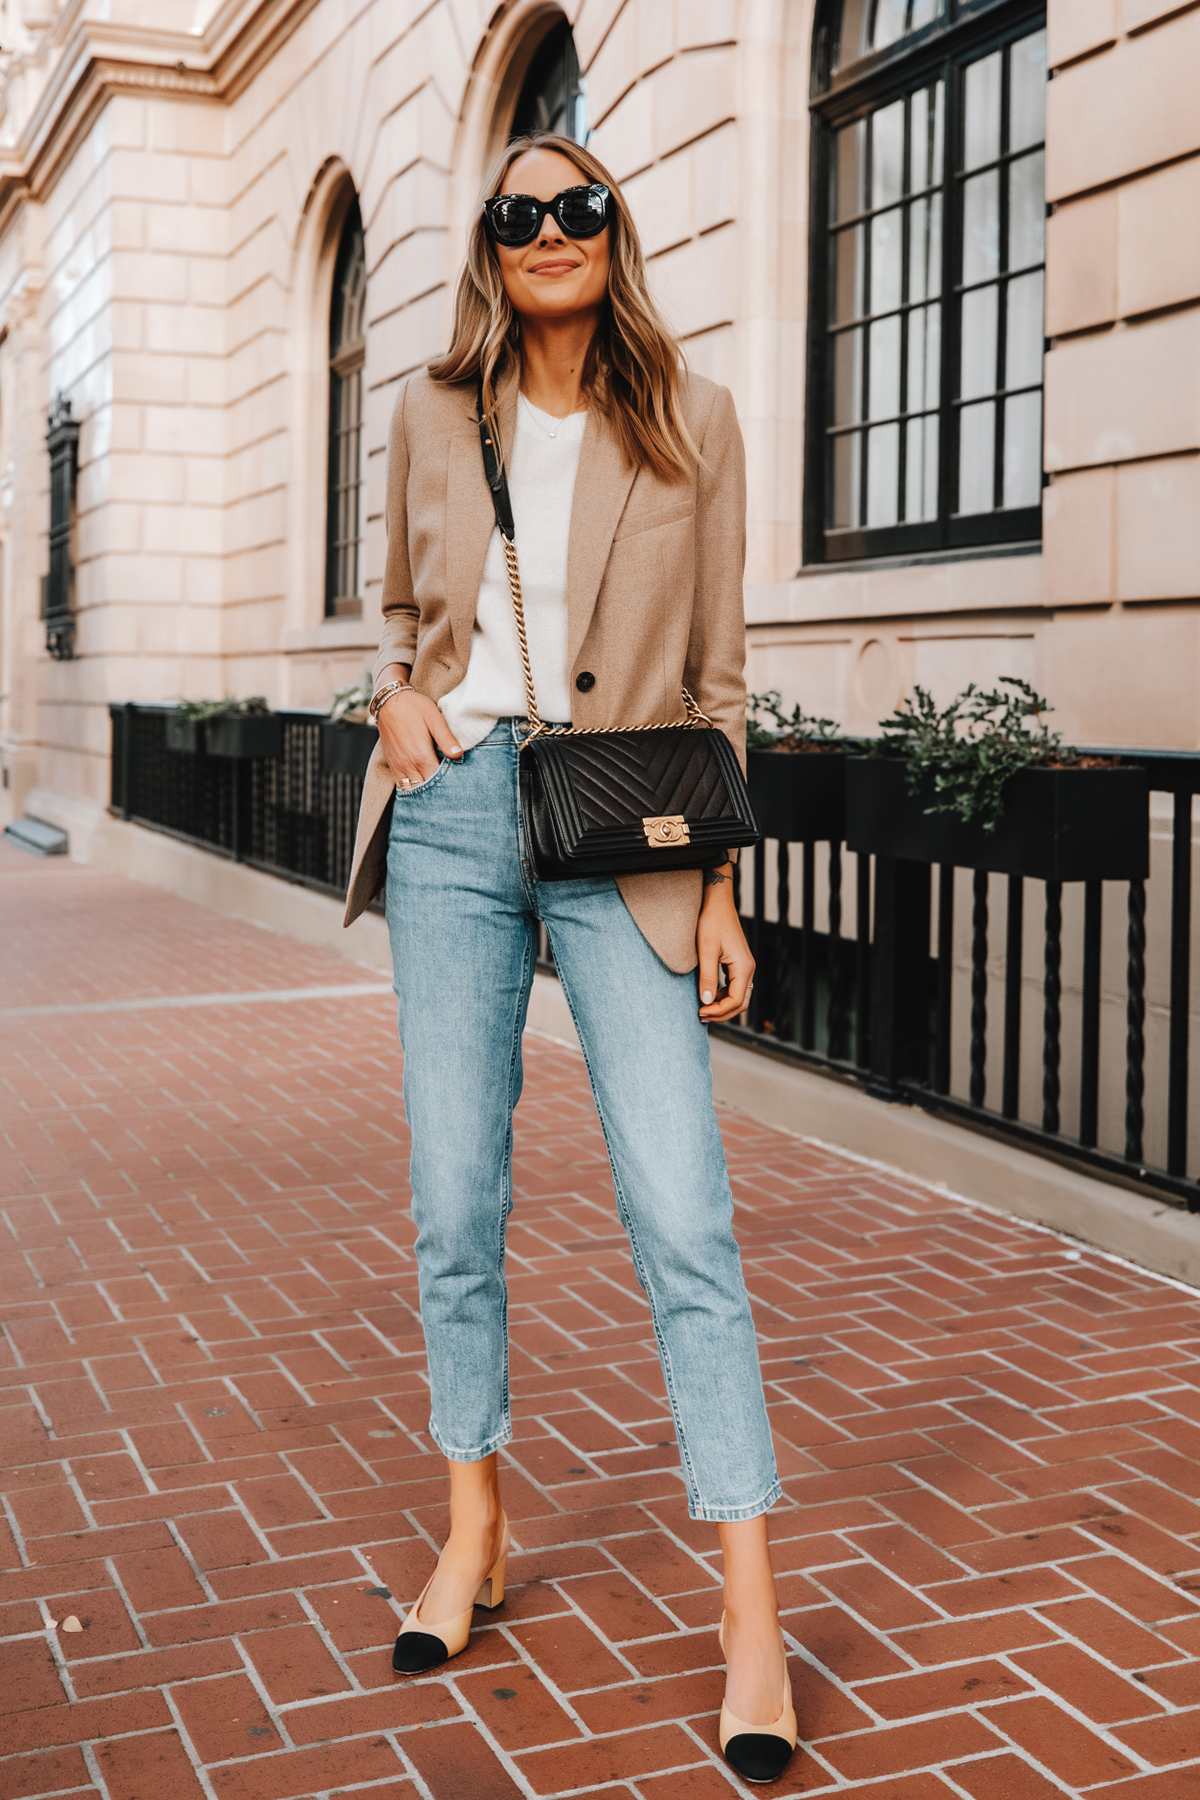 Fashion Jackson Wearing Everlane Oversized Blazer Beige Twill White Sweater Casual Jeans Chanel Slingbacks Chanel Boy Bag Business Casual Outfit 1